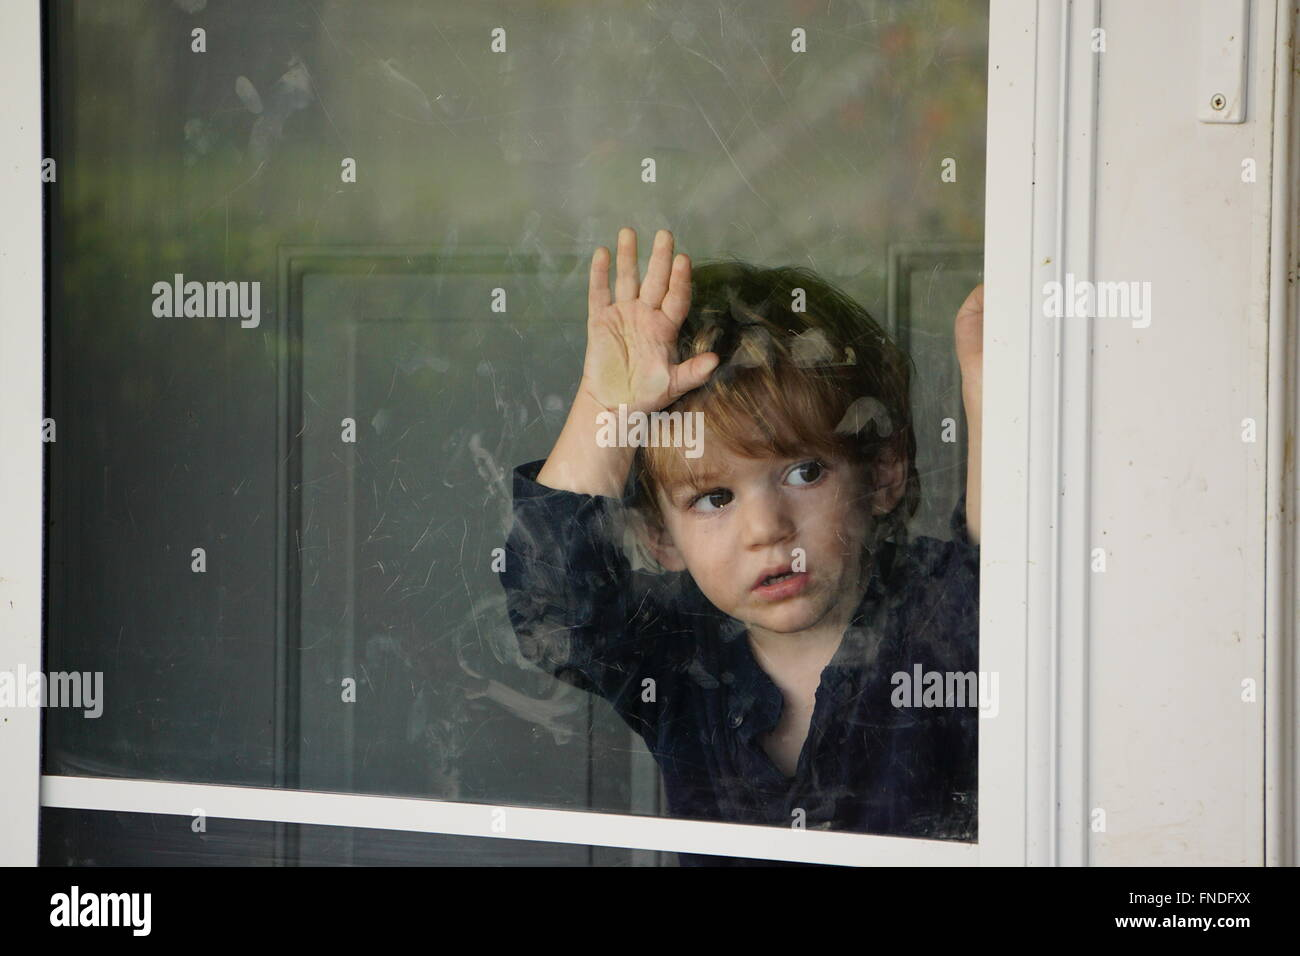 Boy looking outside through a glass door - Stock Image